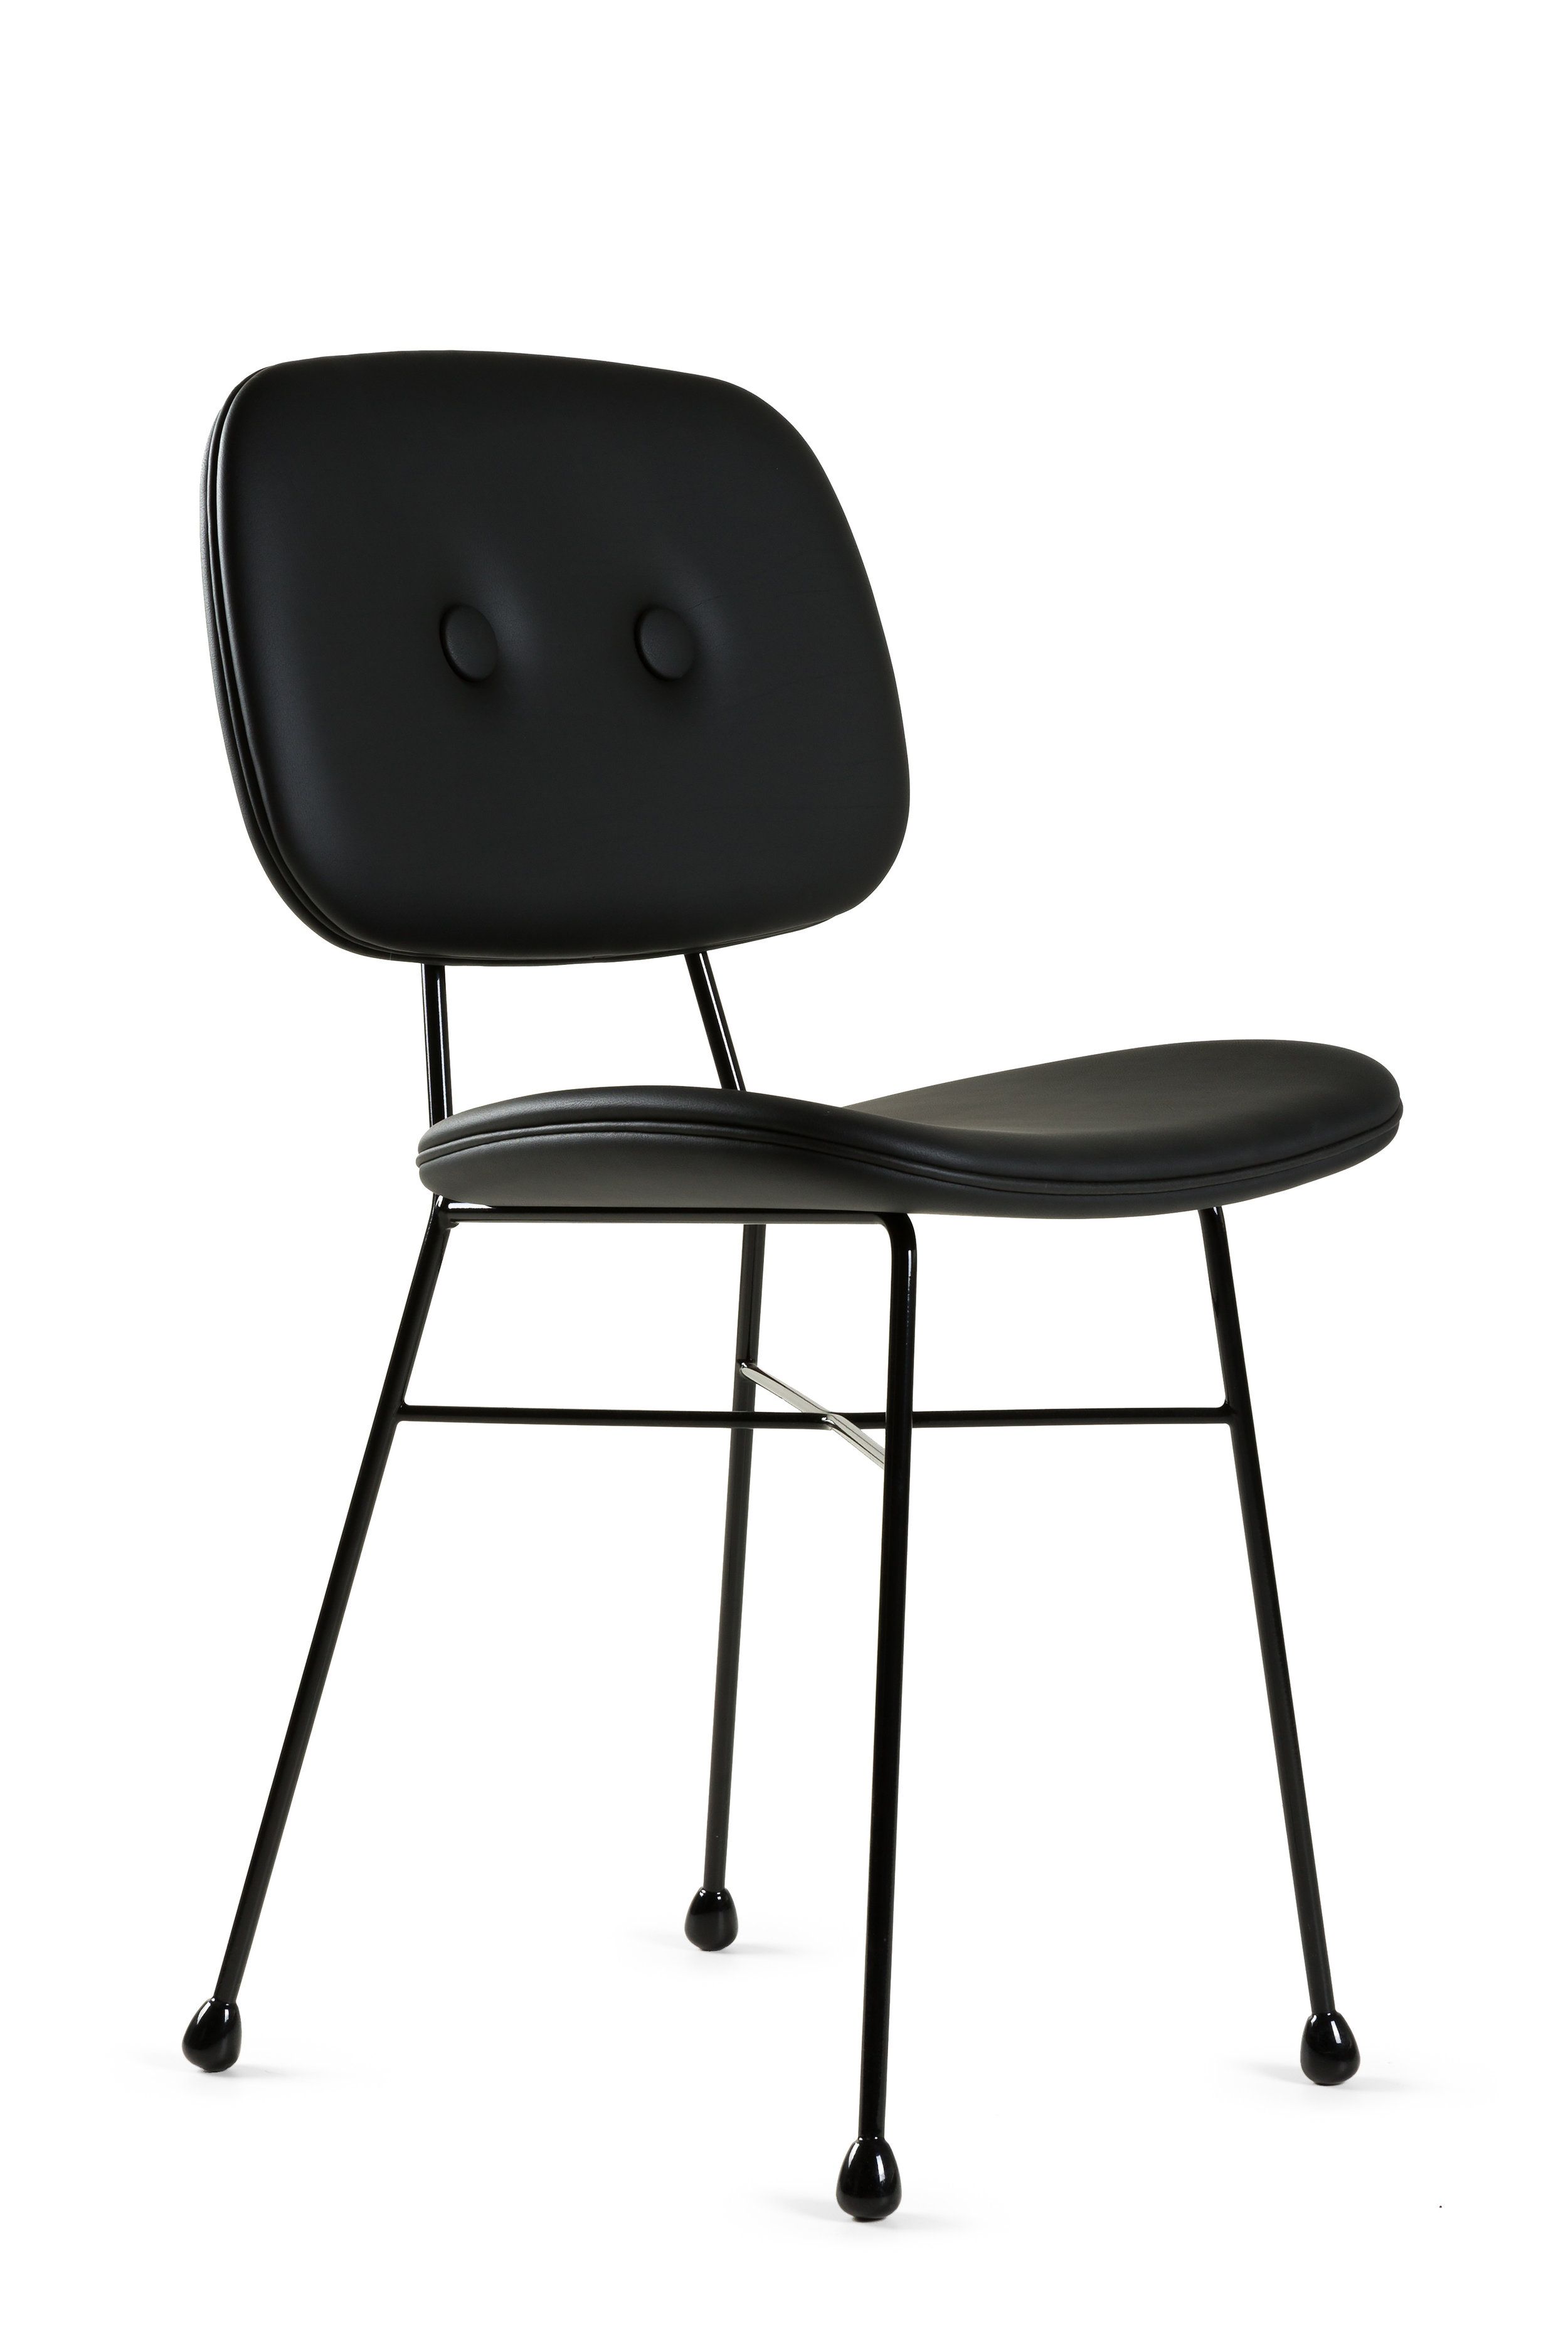 the_golden_chair_black_side_300dpi_moooi.jpg